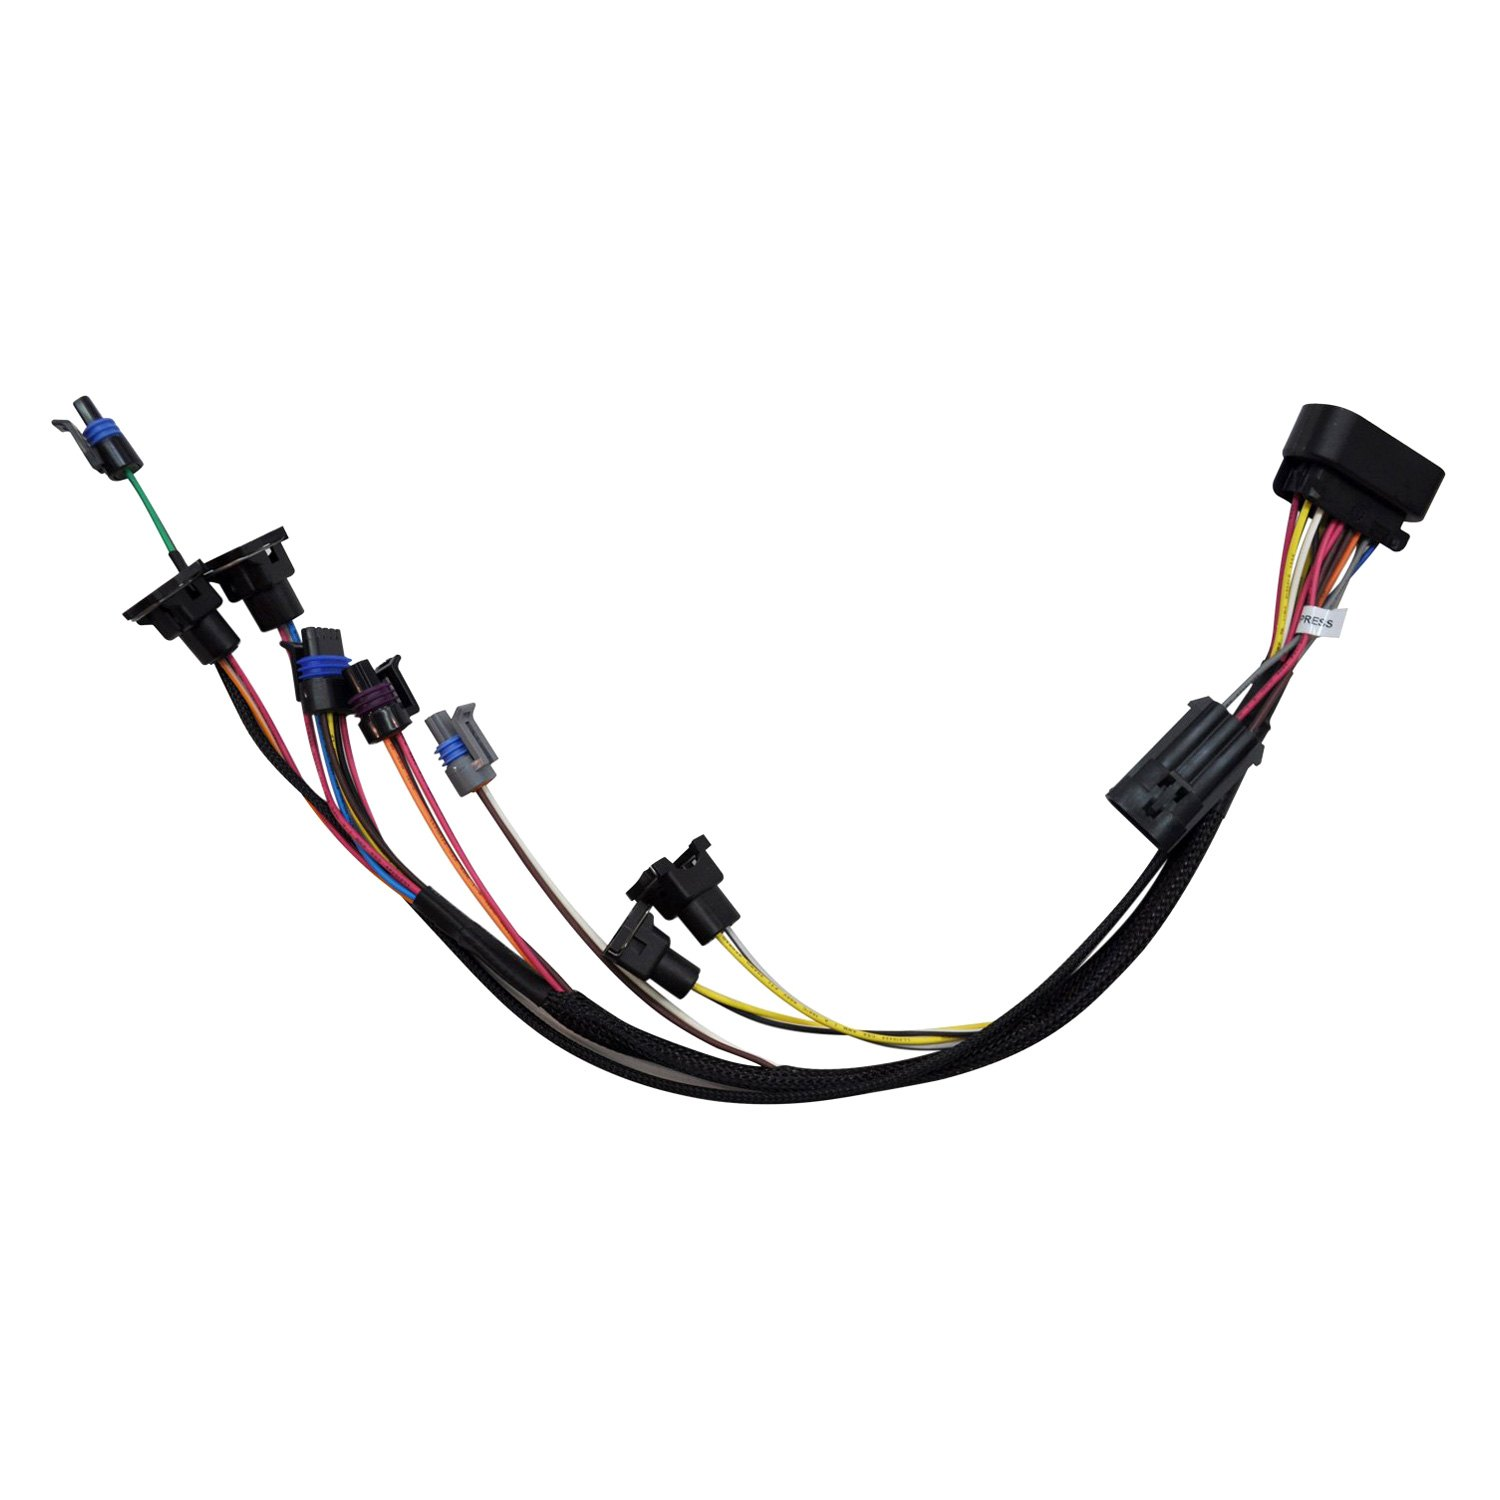 H11 Wire Harness Autozone